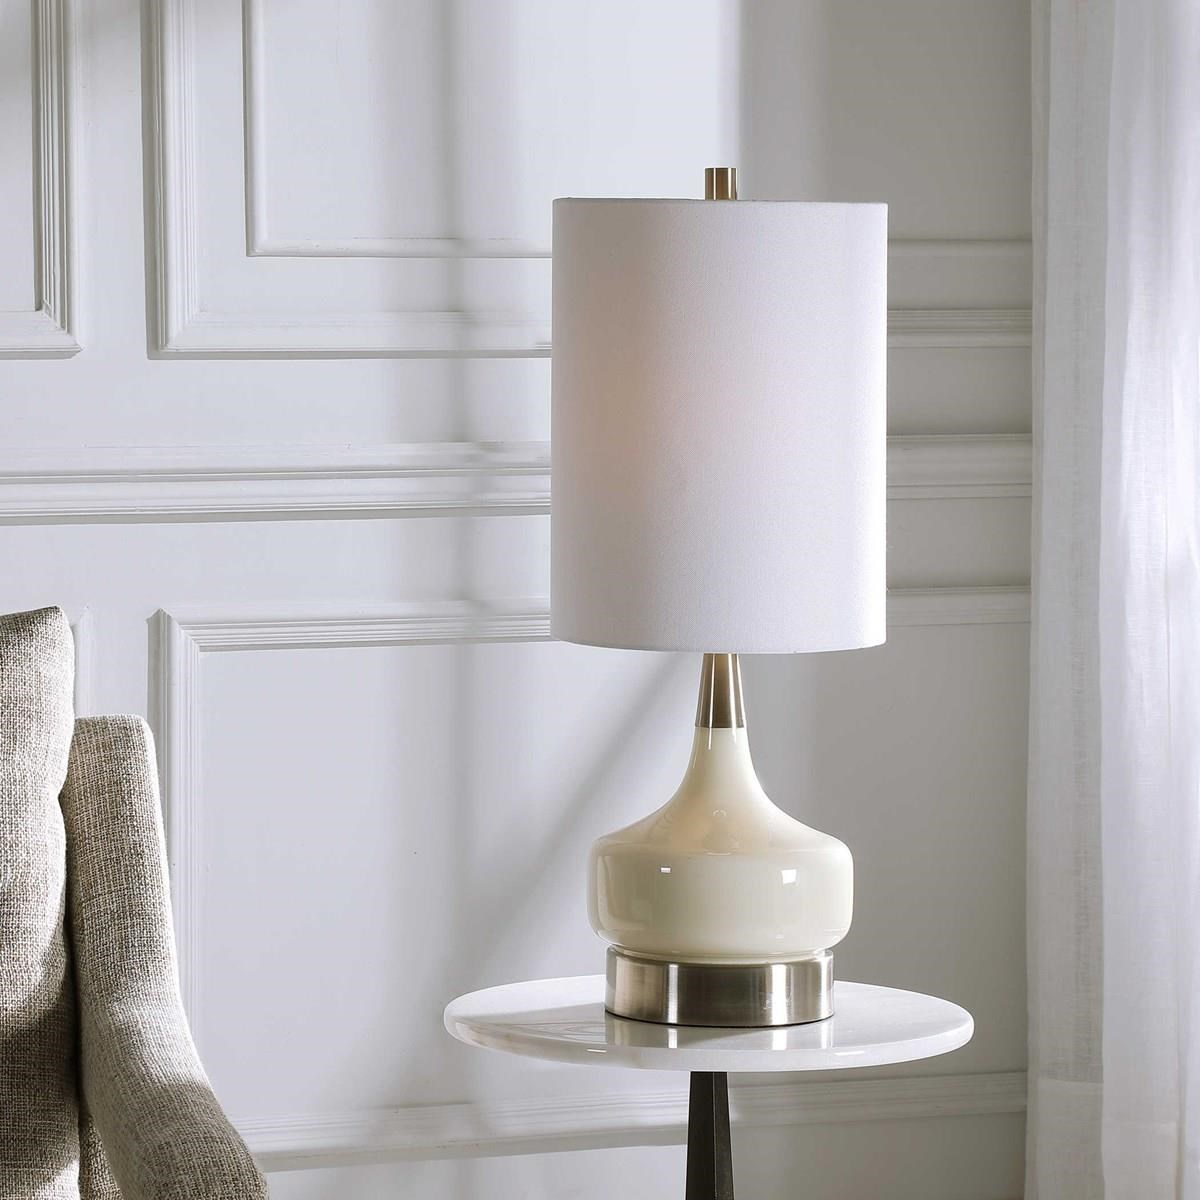 Table Lamps MORGAN TABLE LAMP by Unique at Walker's Furniture